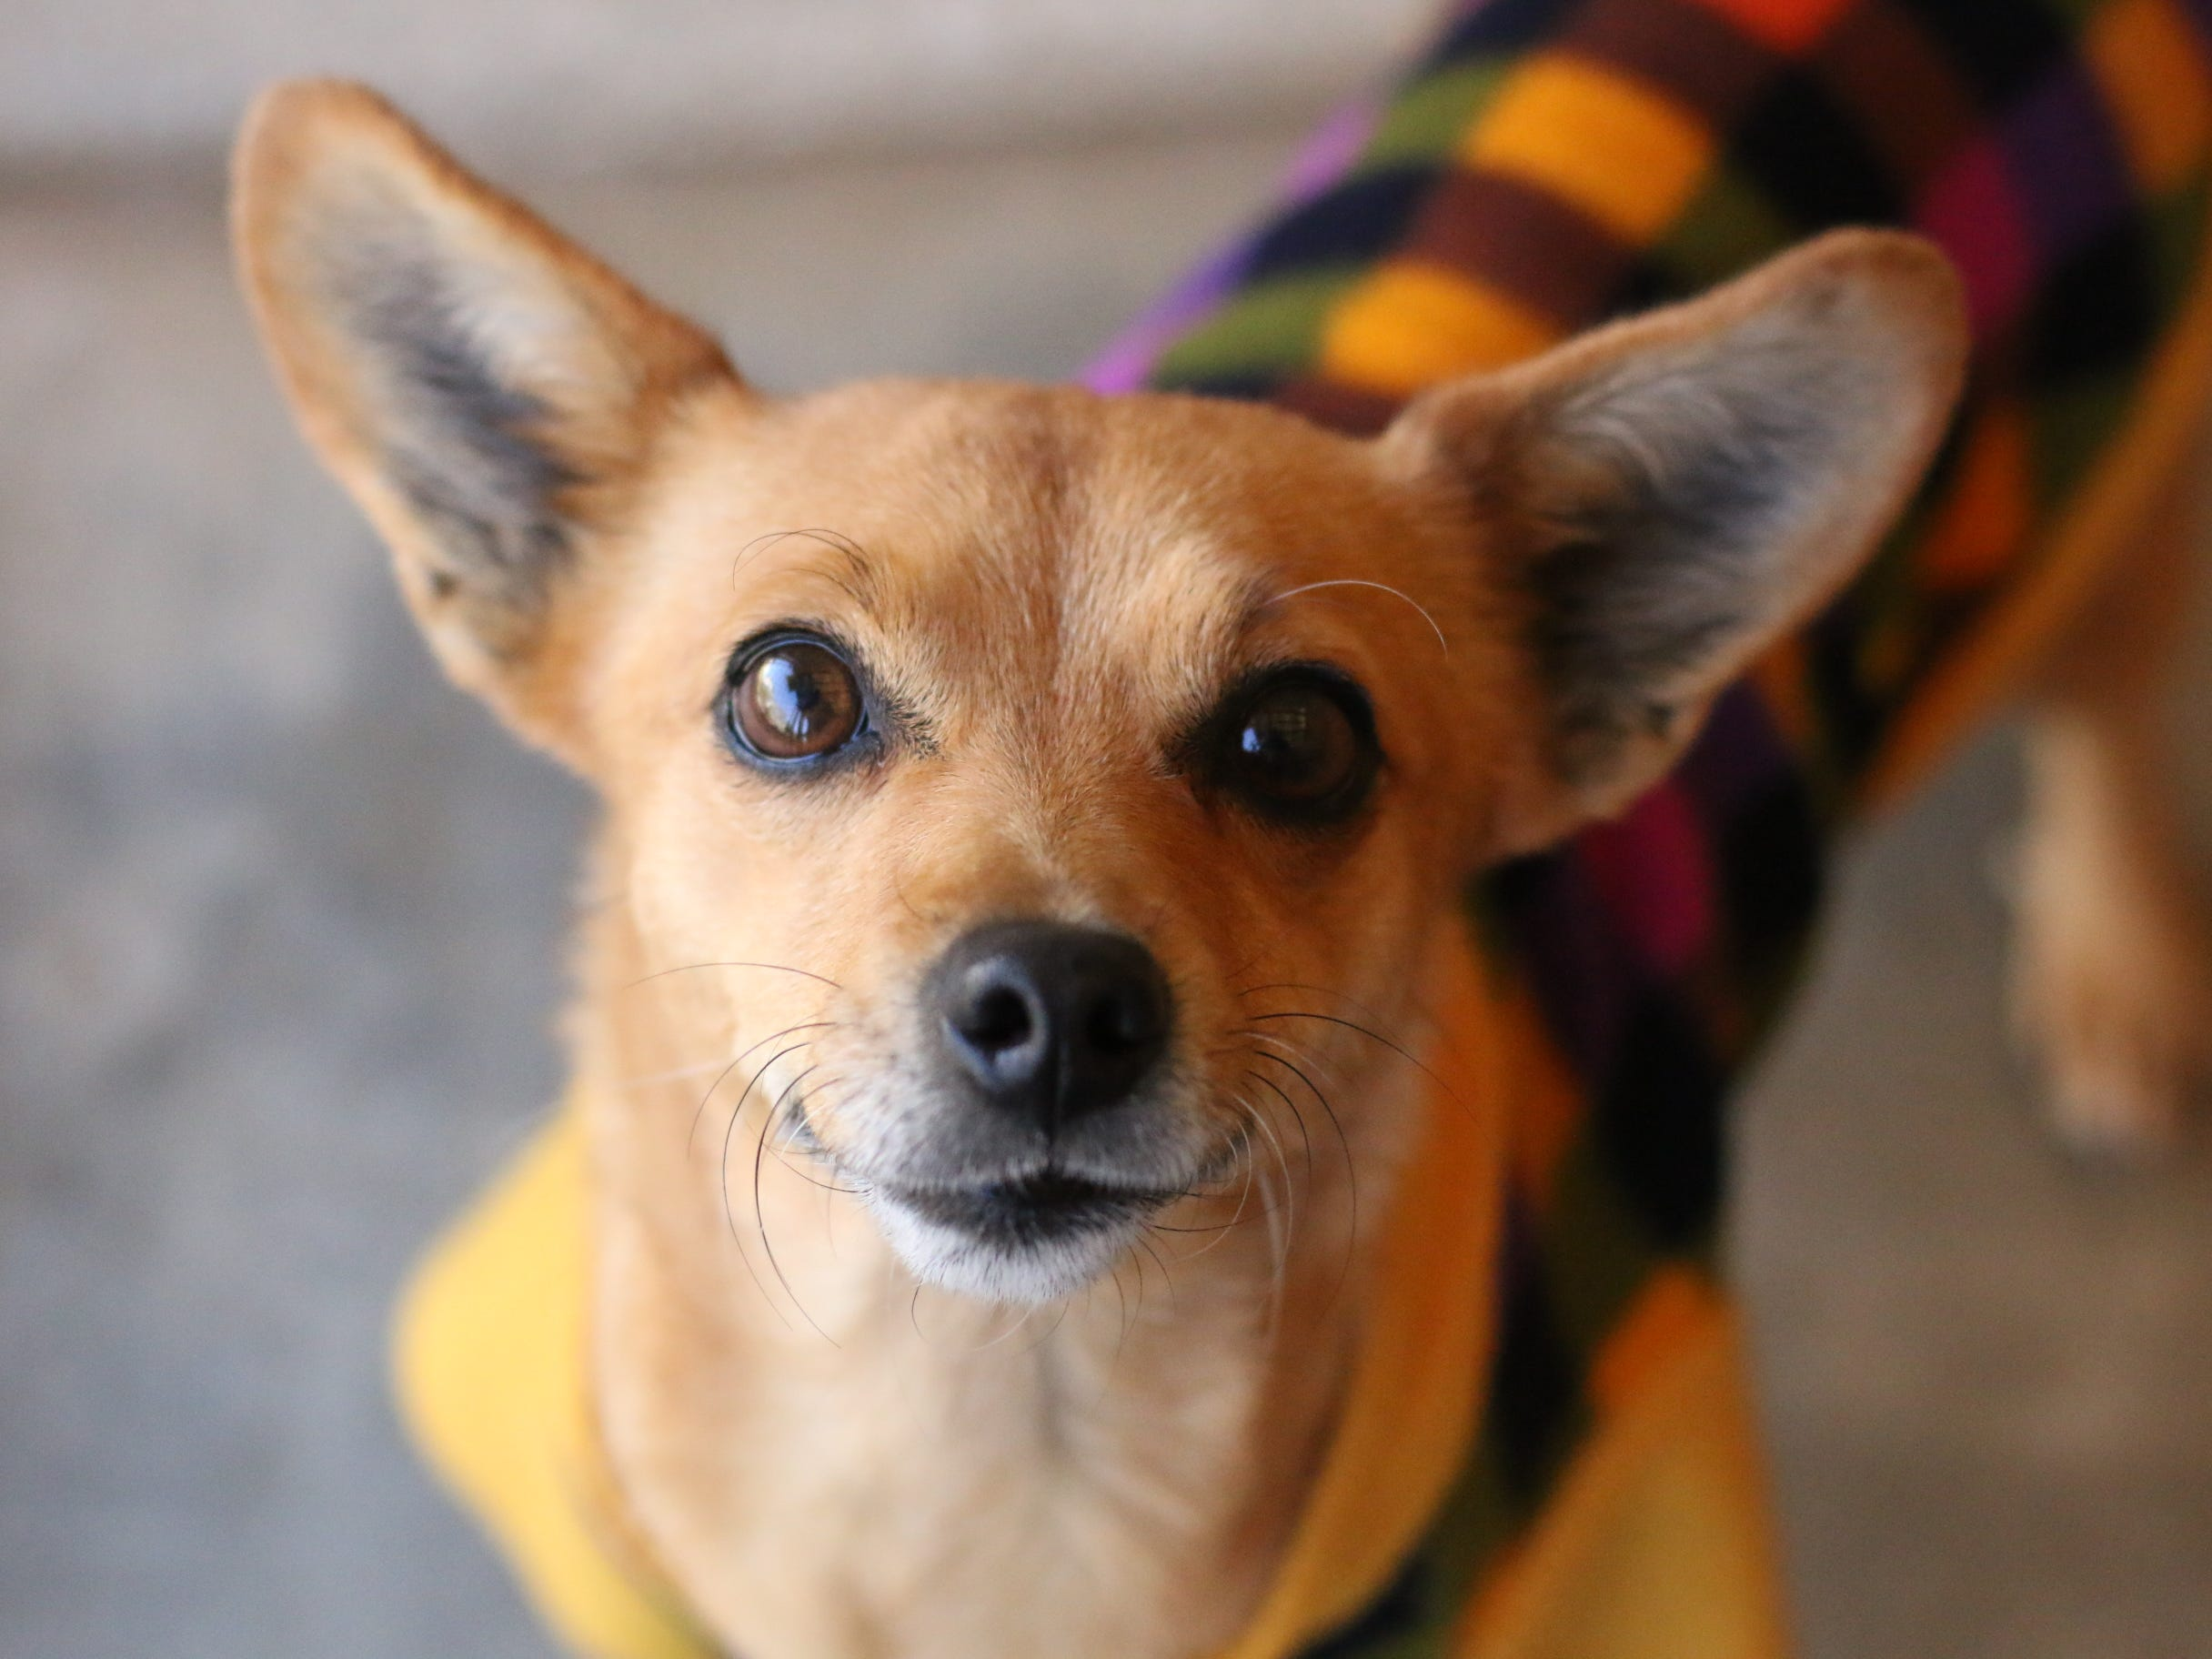 Joanna is a little Chihuahua mix, about 4 years old. We don't know her history, but she is a funny, playful little dog. Joanna is spayed.She should be an only pet in a home with no small children.You can meet Joanna at the Humane Society of Ventura County in Ojai. Her adoption fee of $120 includessterilization, vaccinations, microchip implantation, free veterinarian visit,ID tag anda fun new family member.For more information on Joanna or other available animals, or to volunteer, please call 805-646-6505 or visit www.hsvc.org.The shelter is located at 402 Bryant St.,Ojai.Hours are 10 a.m. to 5 p.m. Monday through Saturday. The shelter can also provide information about help with animal evacuations during storms.